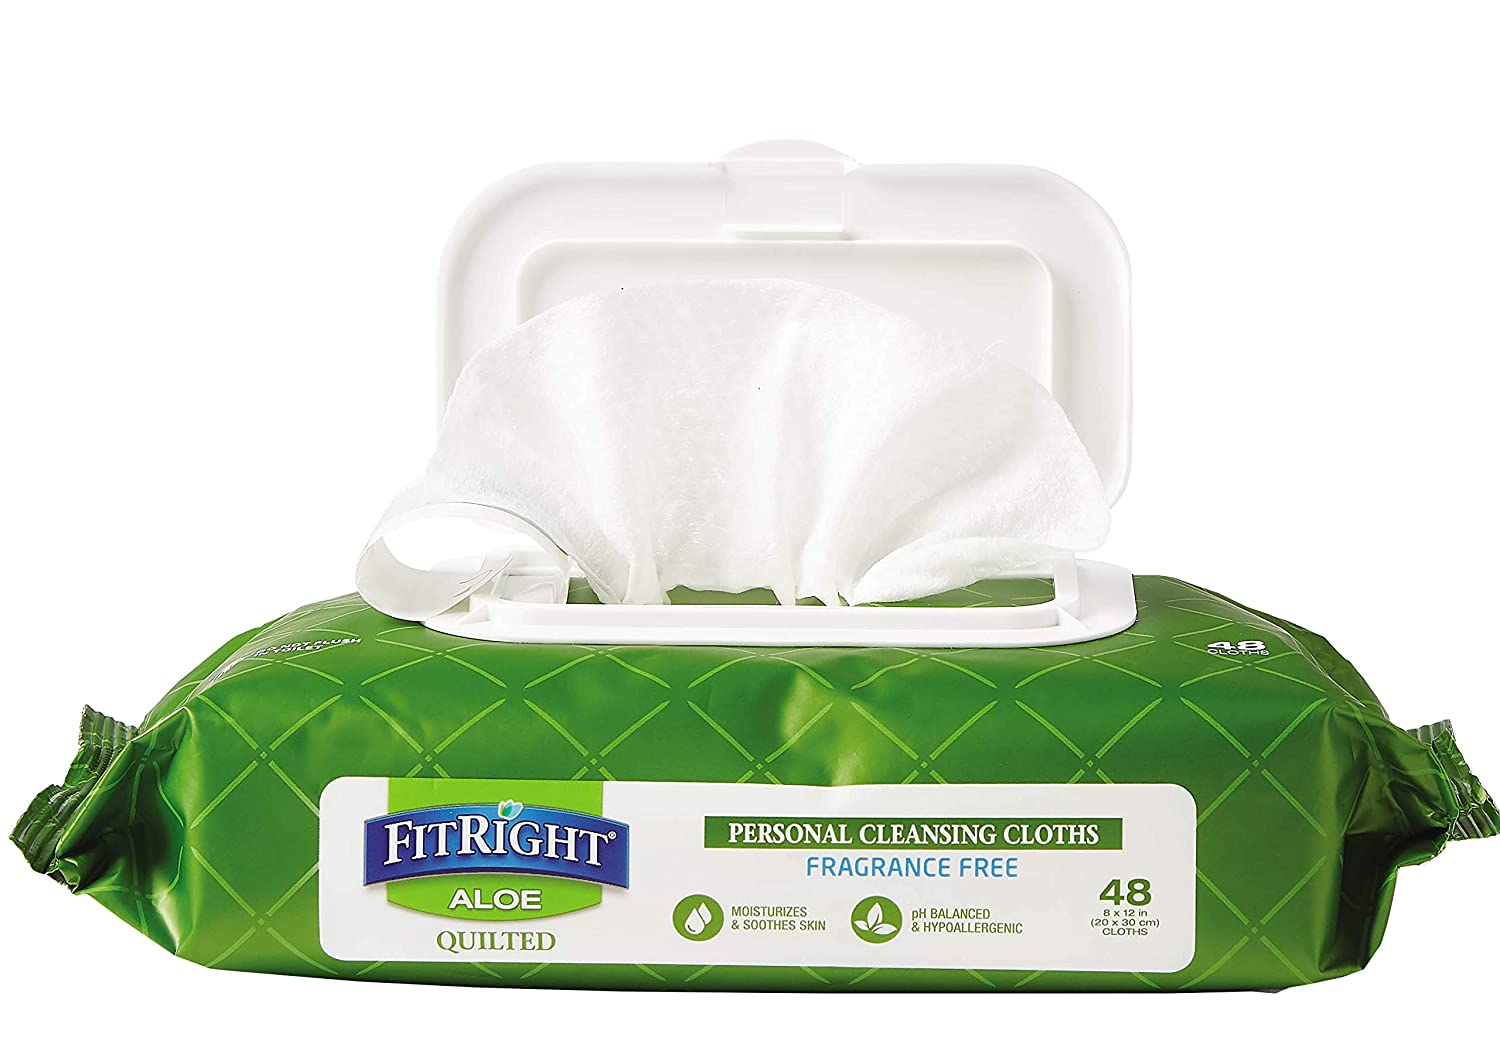 FitRight Aloe Quilted Heavyweight Personal Cleansing Cloth Wipes